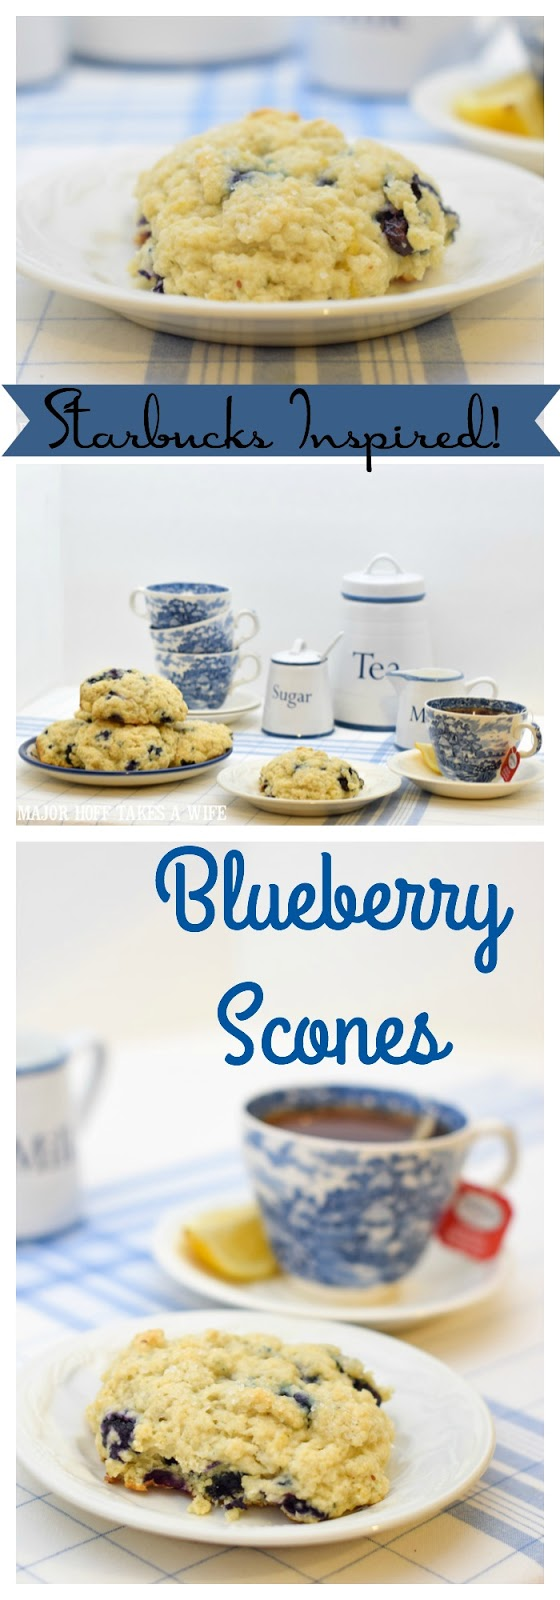 A melt in your mouth recipe for blueberry scones. Inspired by Starbucks in house version, this blueberry scone with hints of lemon and a crunchy sugary top will delight everyone. Serve during High Tea, or just as a mid afternoon snack. Perfect along side tea or coffee, or as a stand alone blueberry dessert. You won't believe how easy these are to make! Never made scones before? Never fear, this includes a step by step tutorial on how to make scones. #HighTea #blueberries #Starbucks #scones #dessert